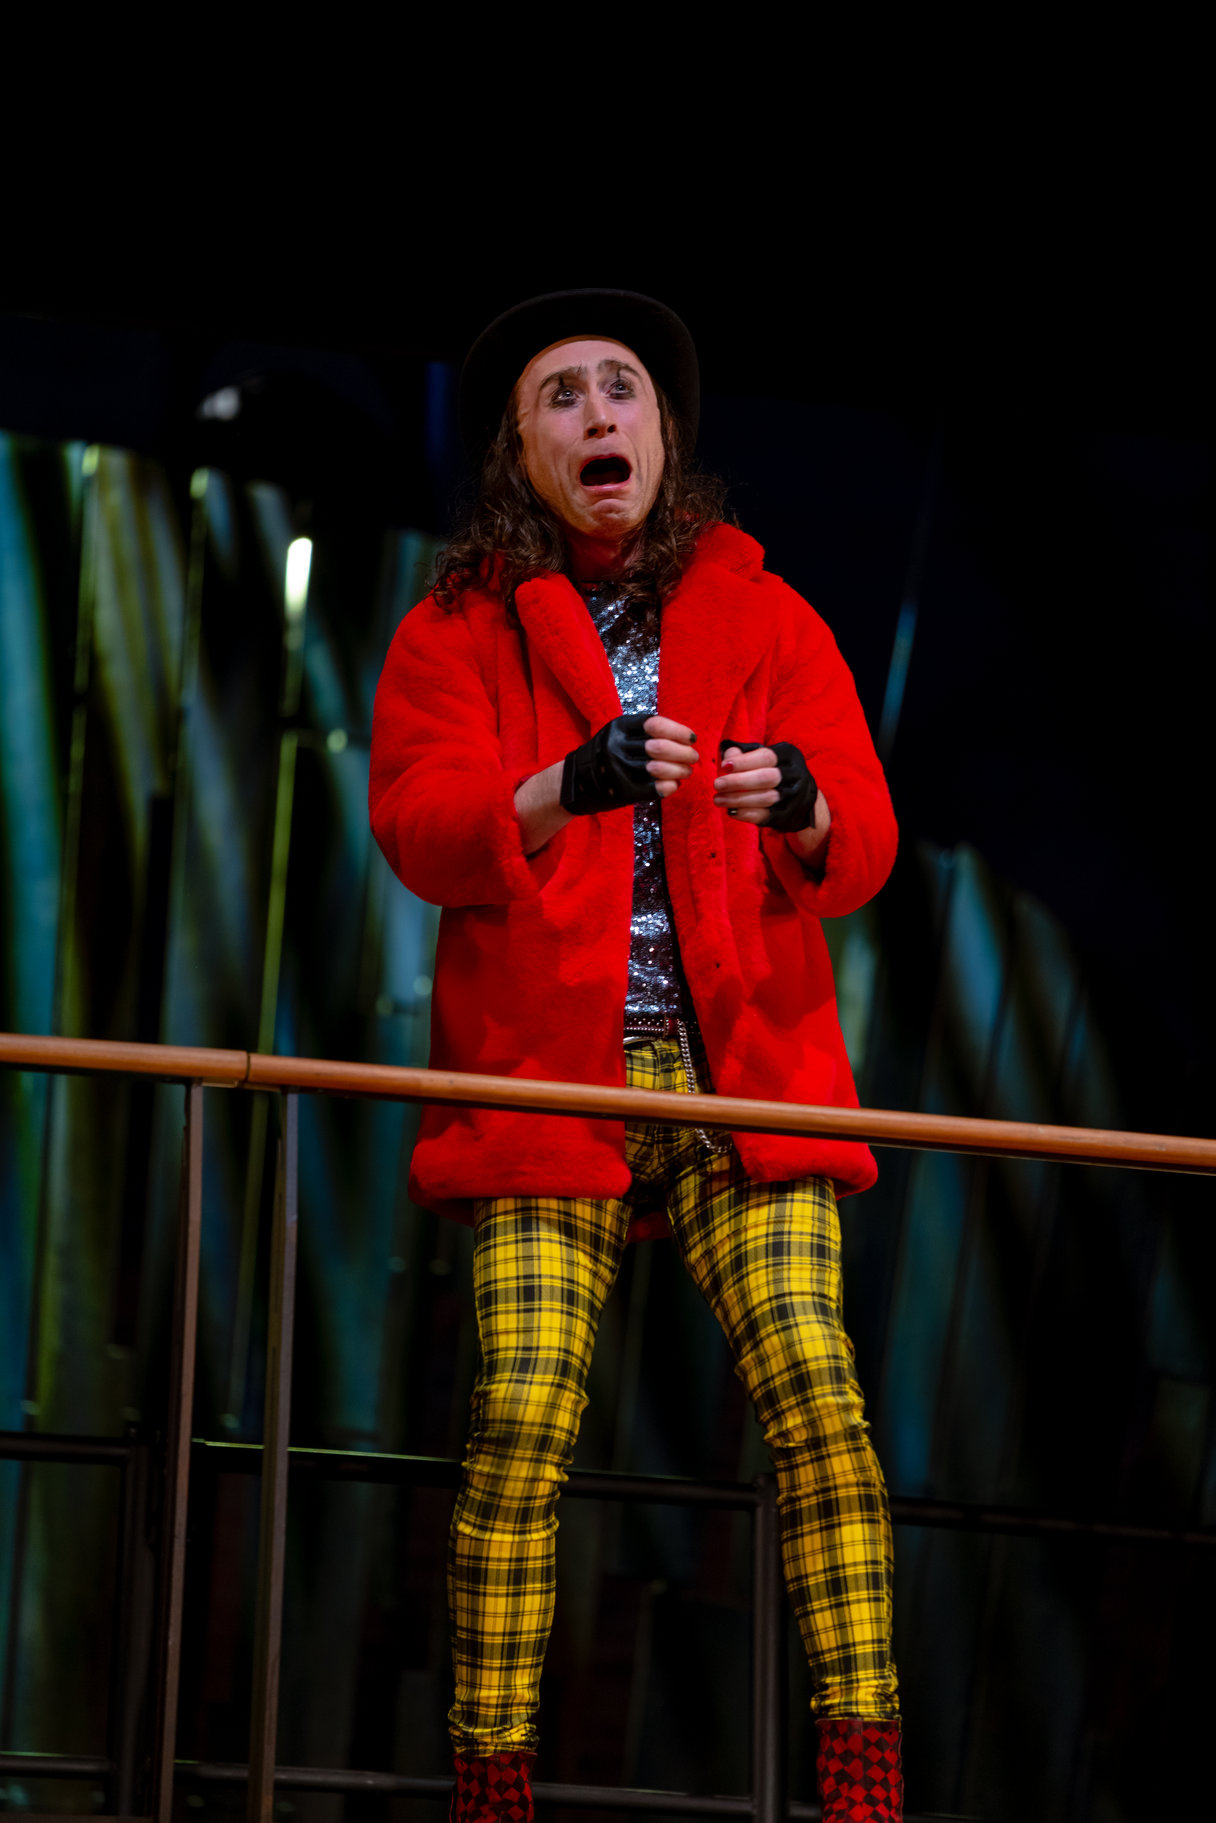 A man in a red coat and yellow checked trousers.